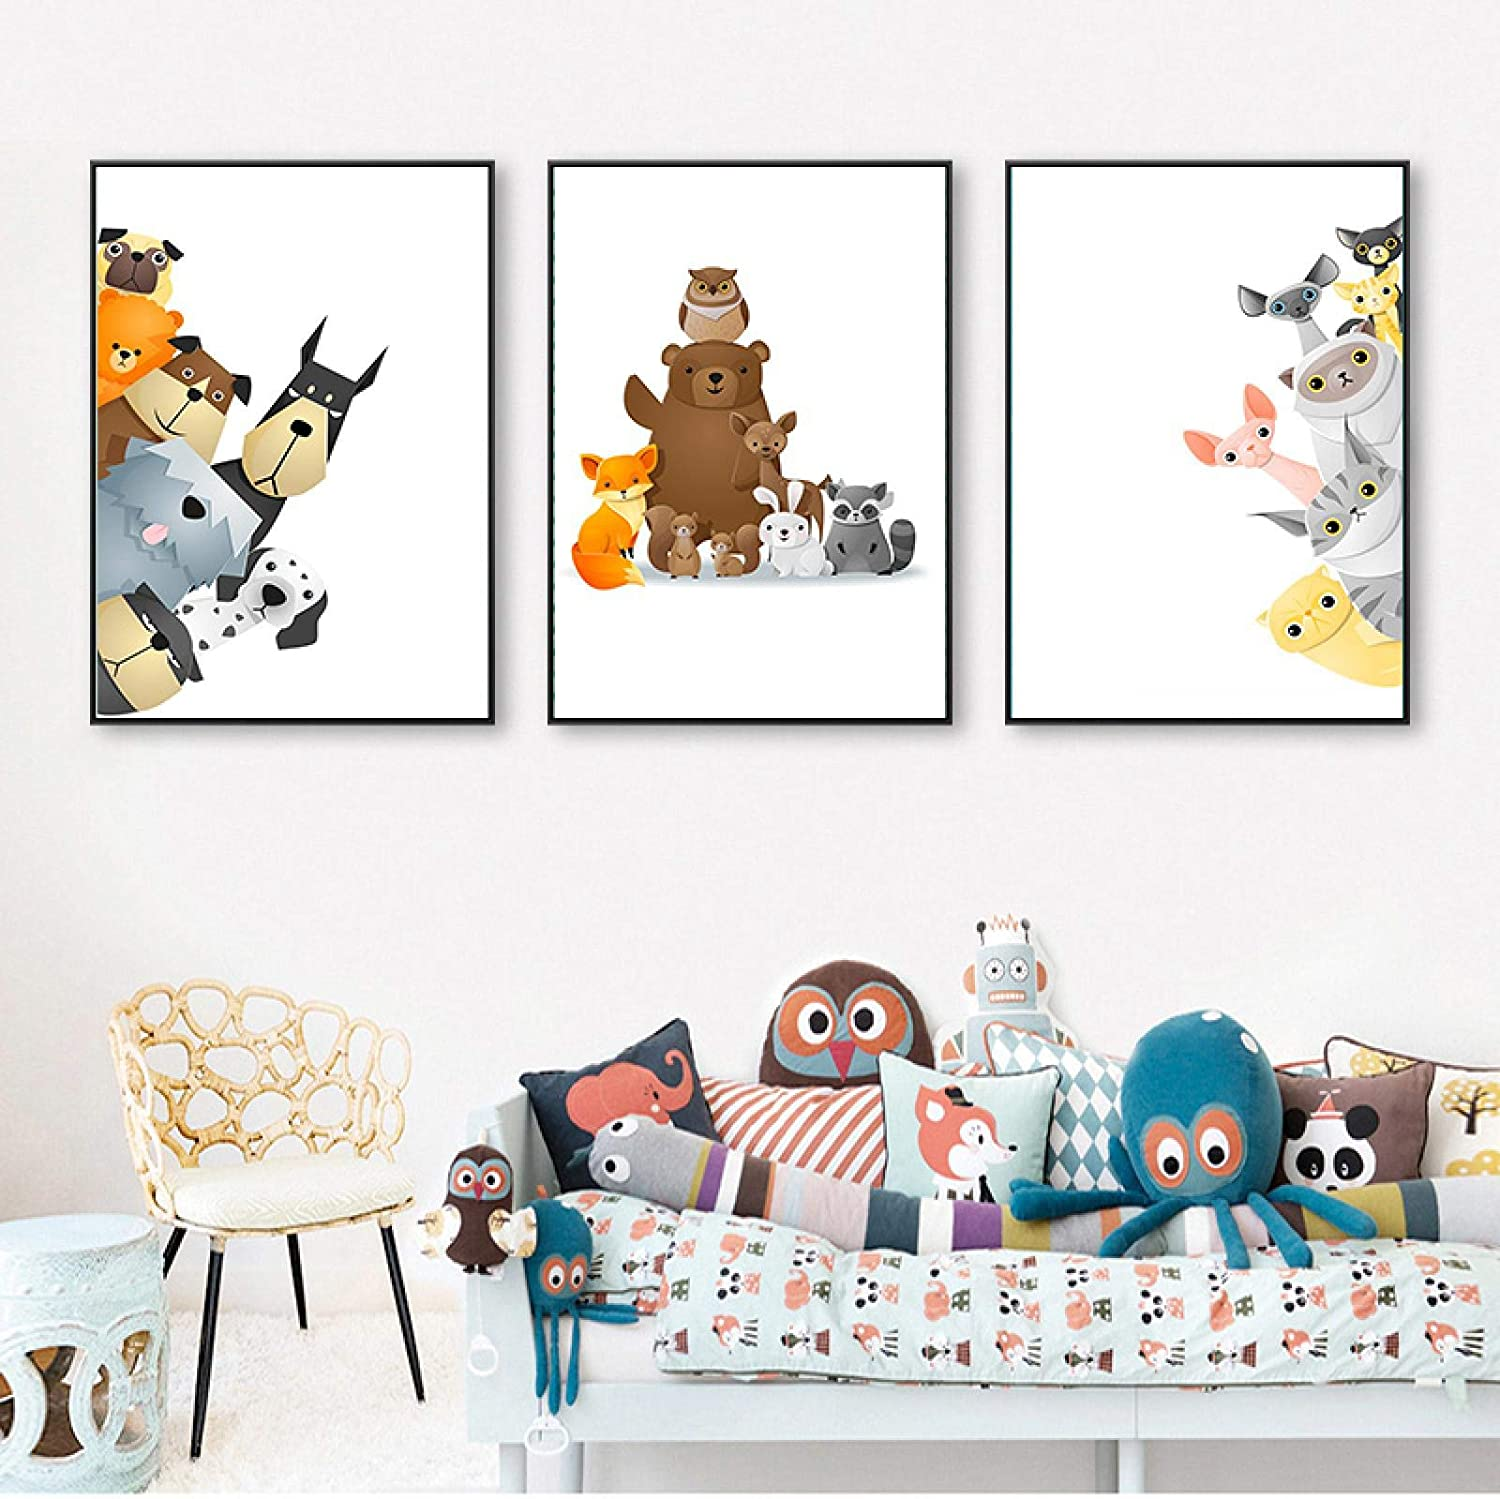 Sunsightly Print on Canvas Cute Poste Pets Bears Large-scale Super special price sale Animals Puppies